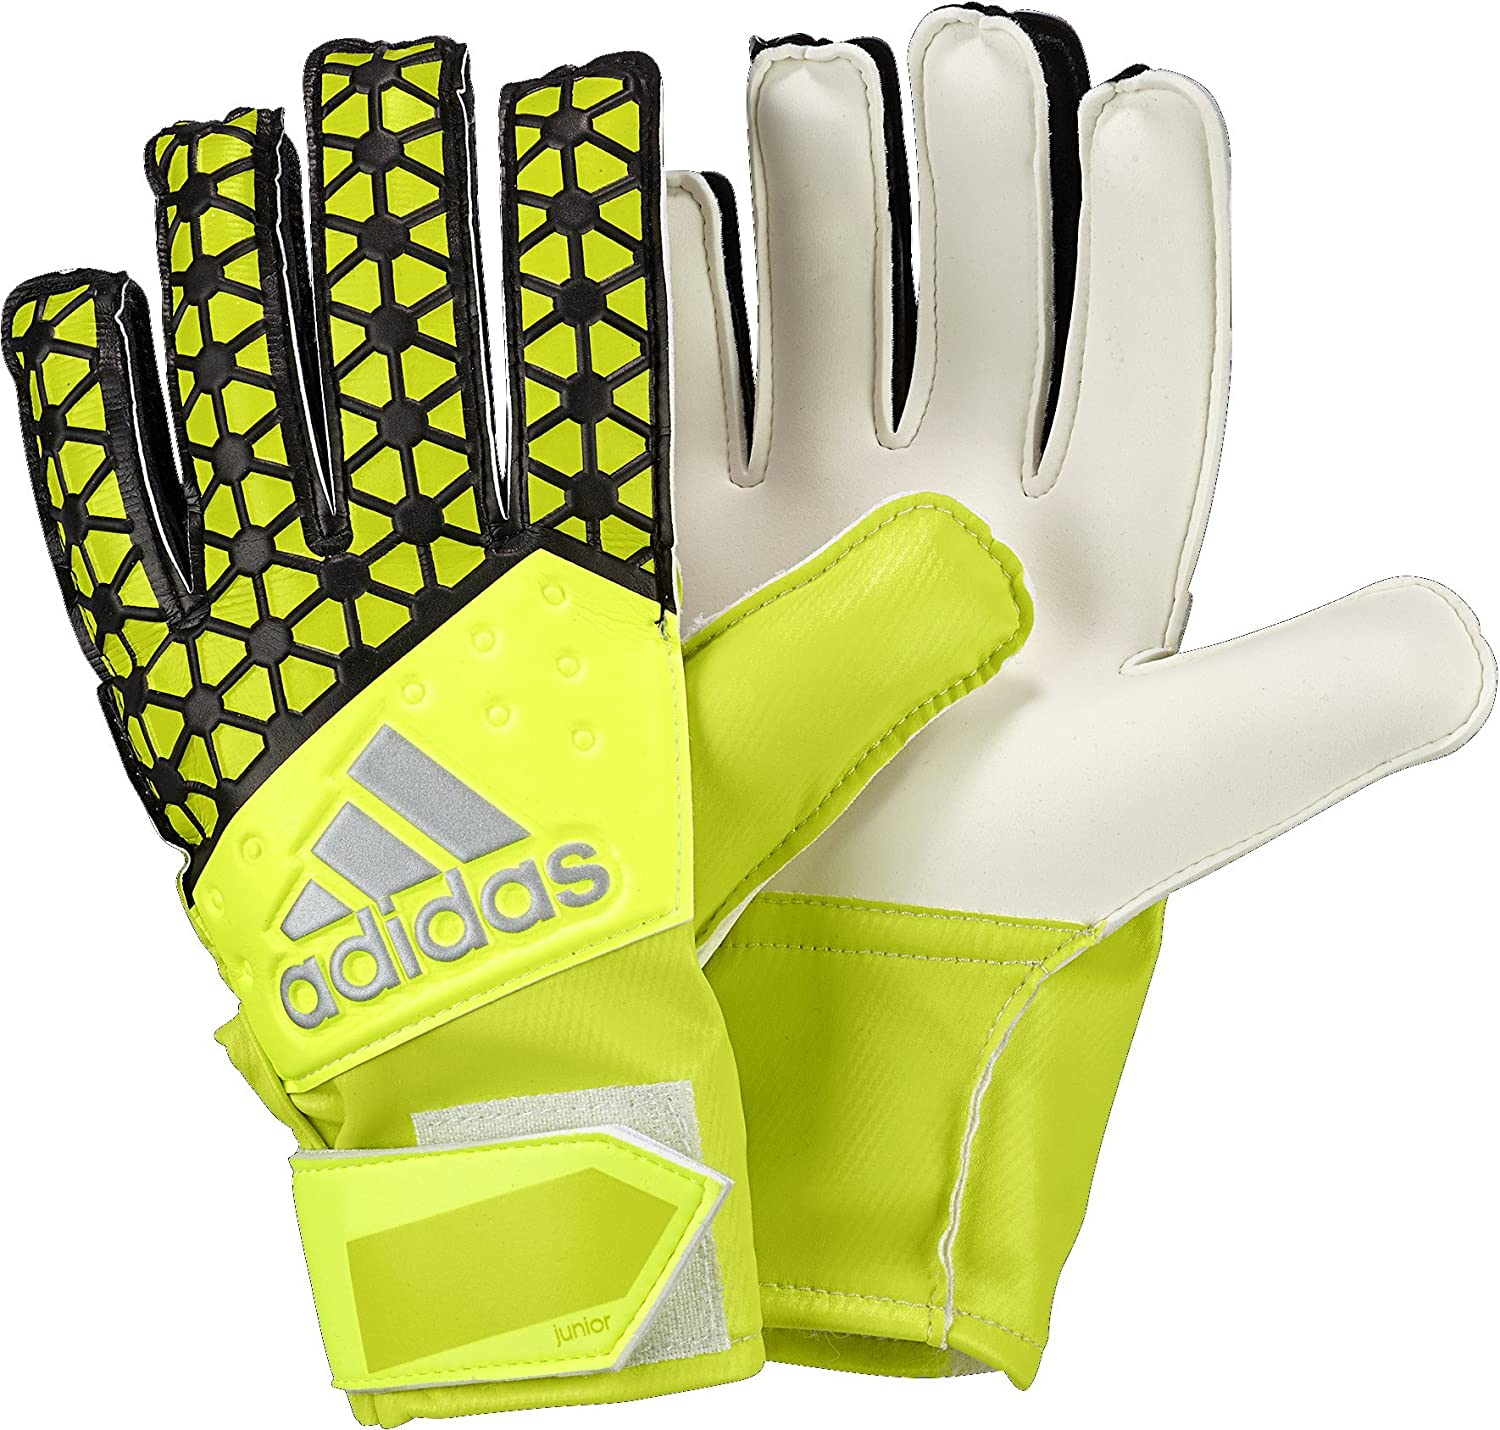 adidasアディダス ジュニア用ゴールキーパーグローブ パフォーマンス エース B00XRIKOEO 6|Solar Yellow/Semi Solar Yellow/Black Solar Yellow/Semi Solar Yellow/Black 6